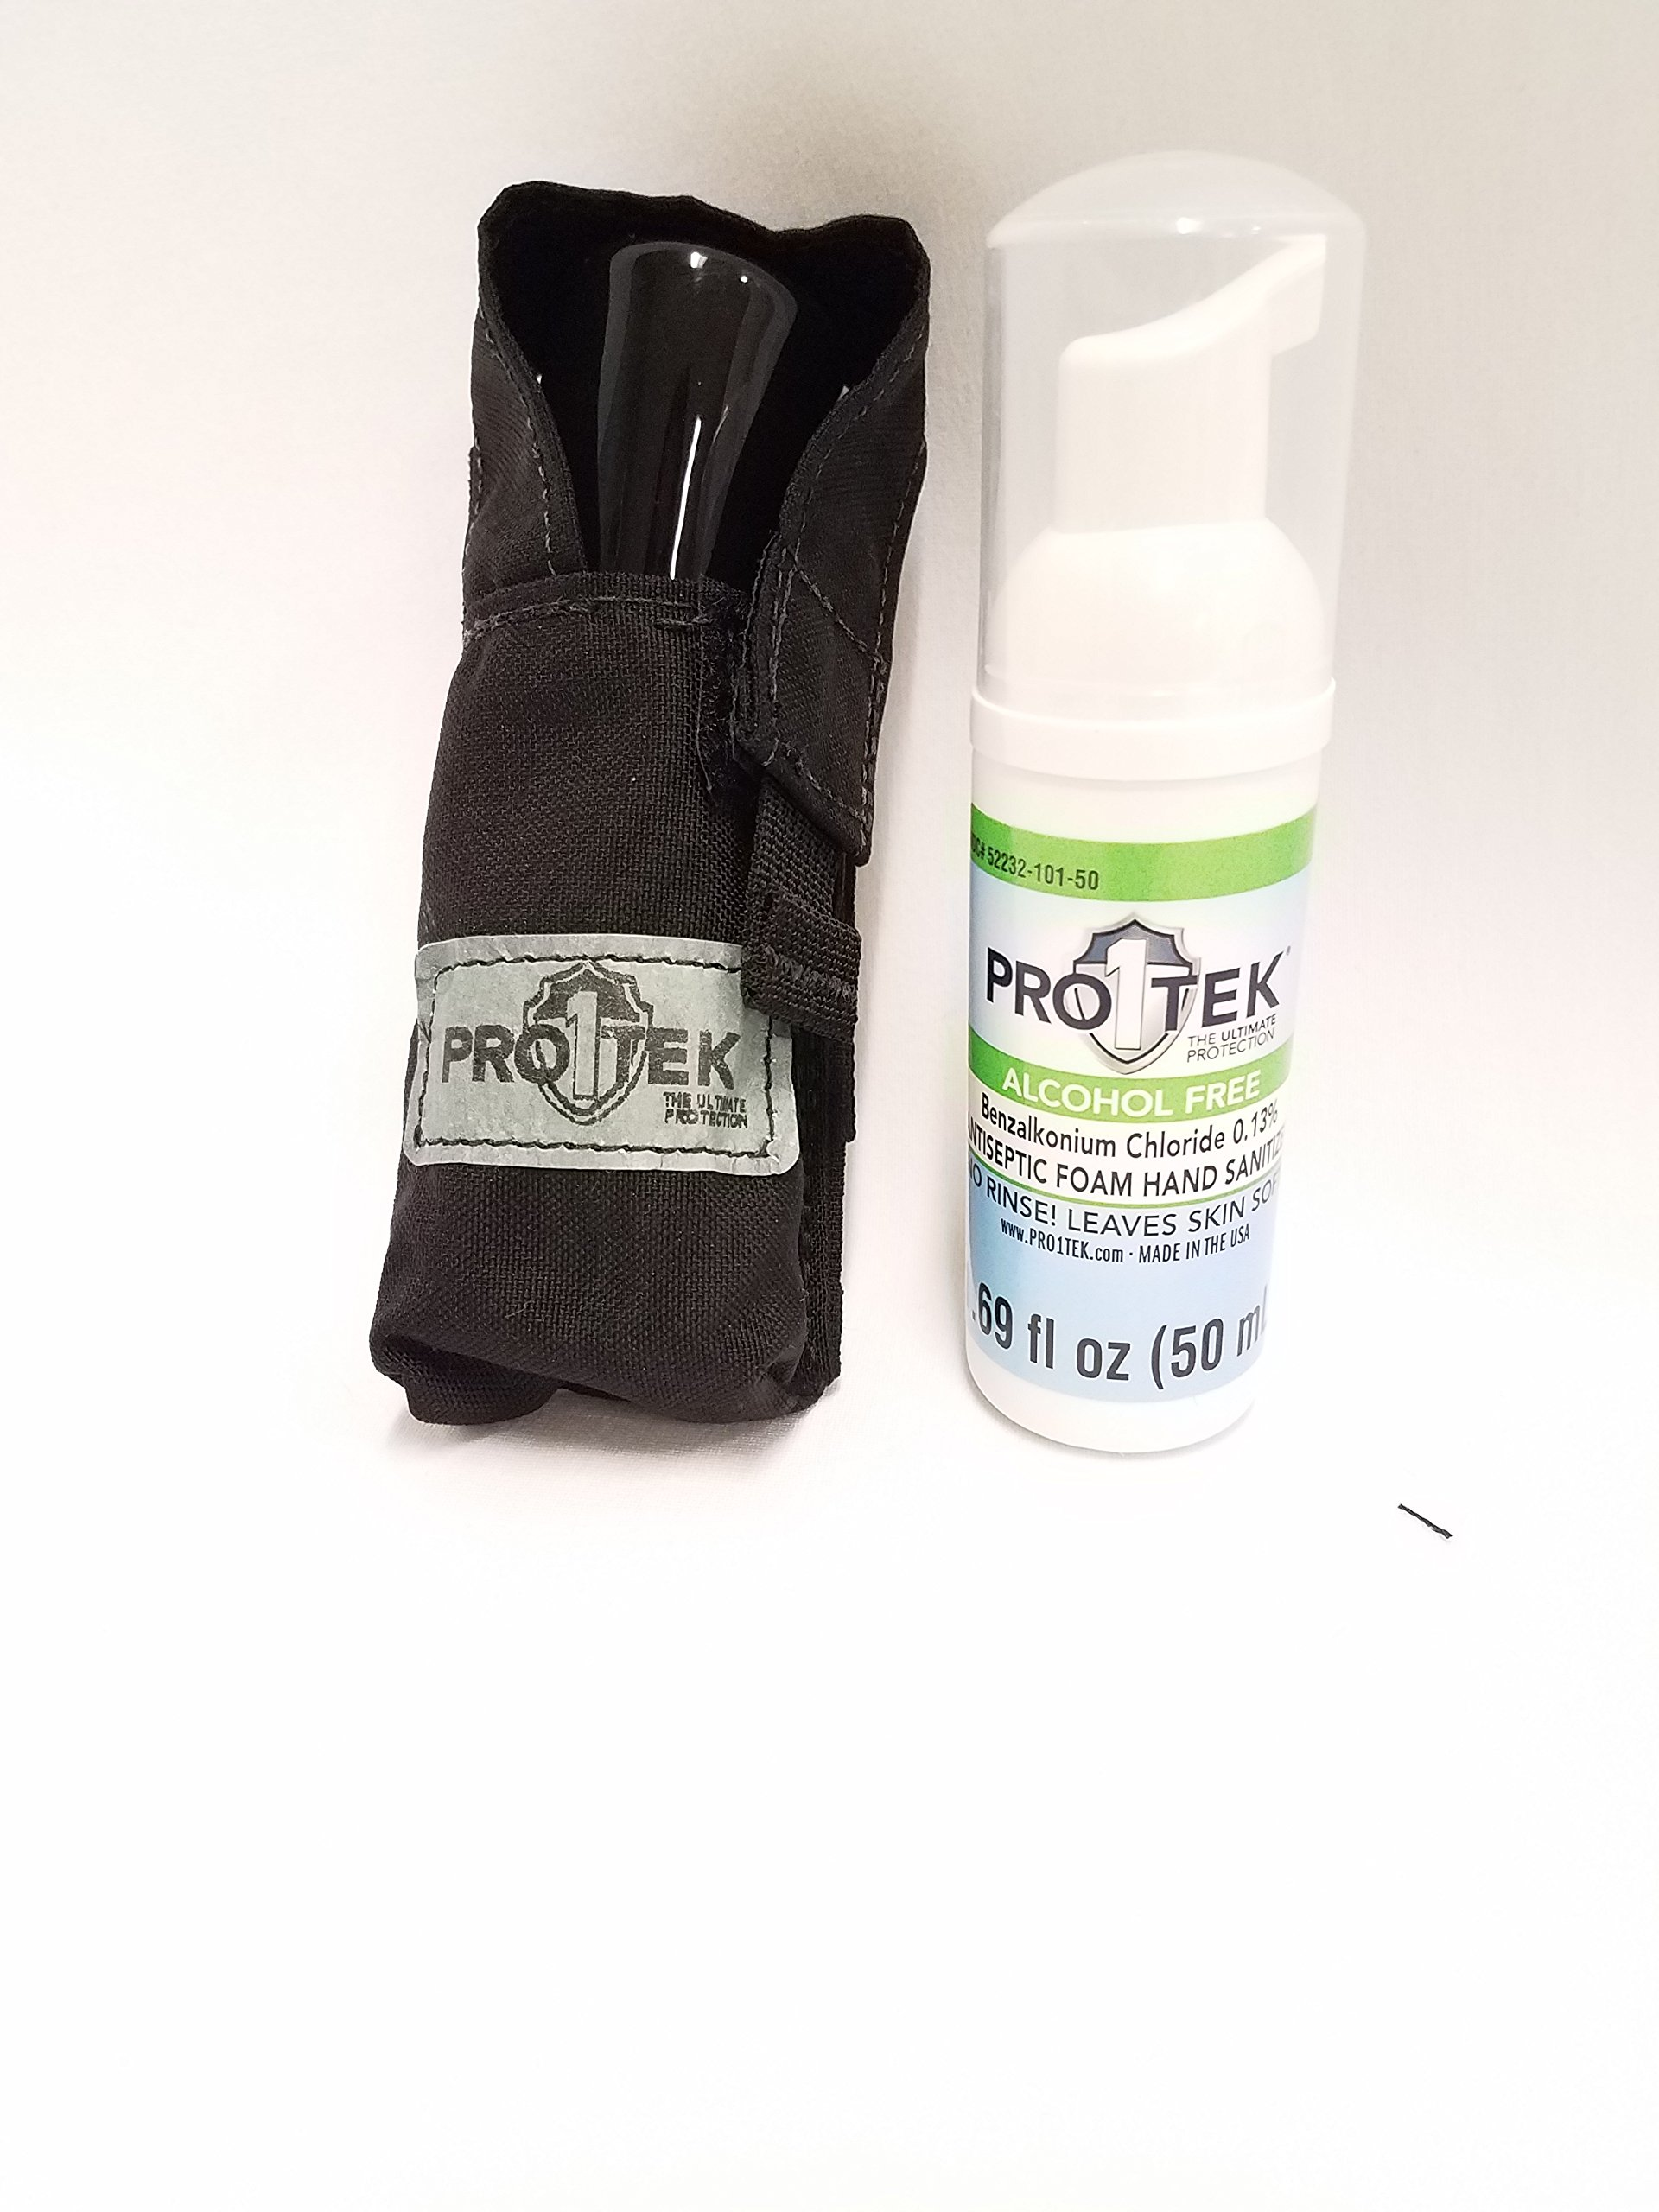 PRO1TEK 50ML SANITIZER WITH BLACK PROTECTIVE COVER- CASE OF 21 by PRO1TEK (Image #1)